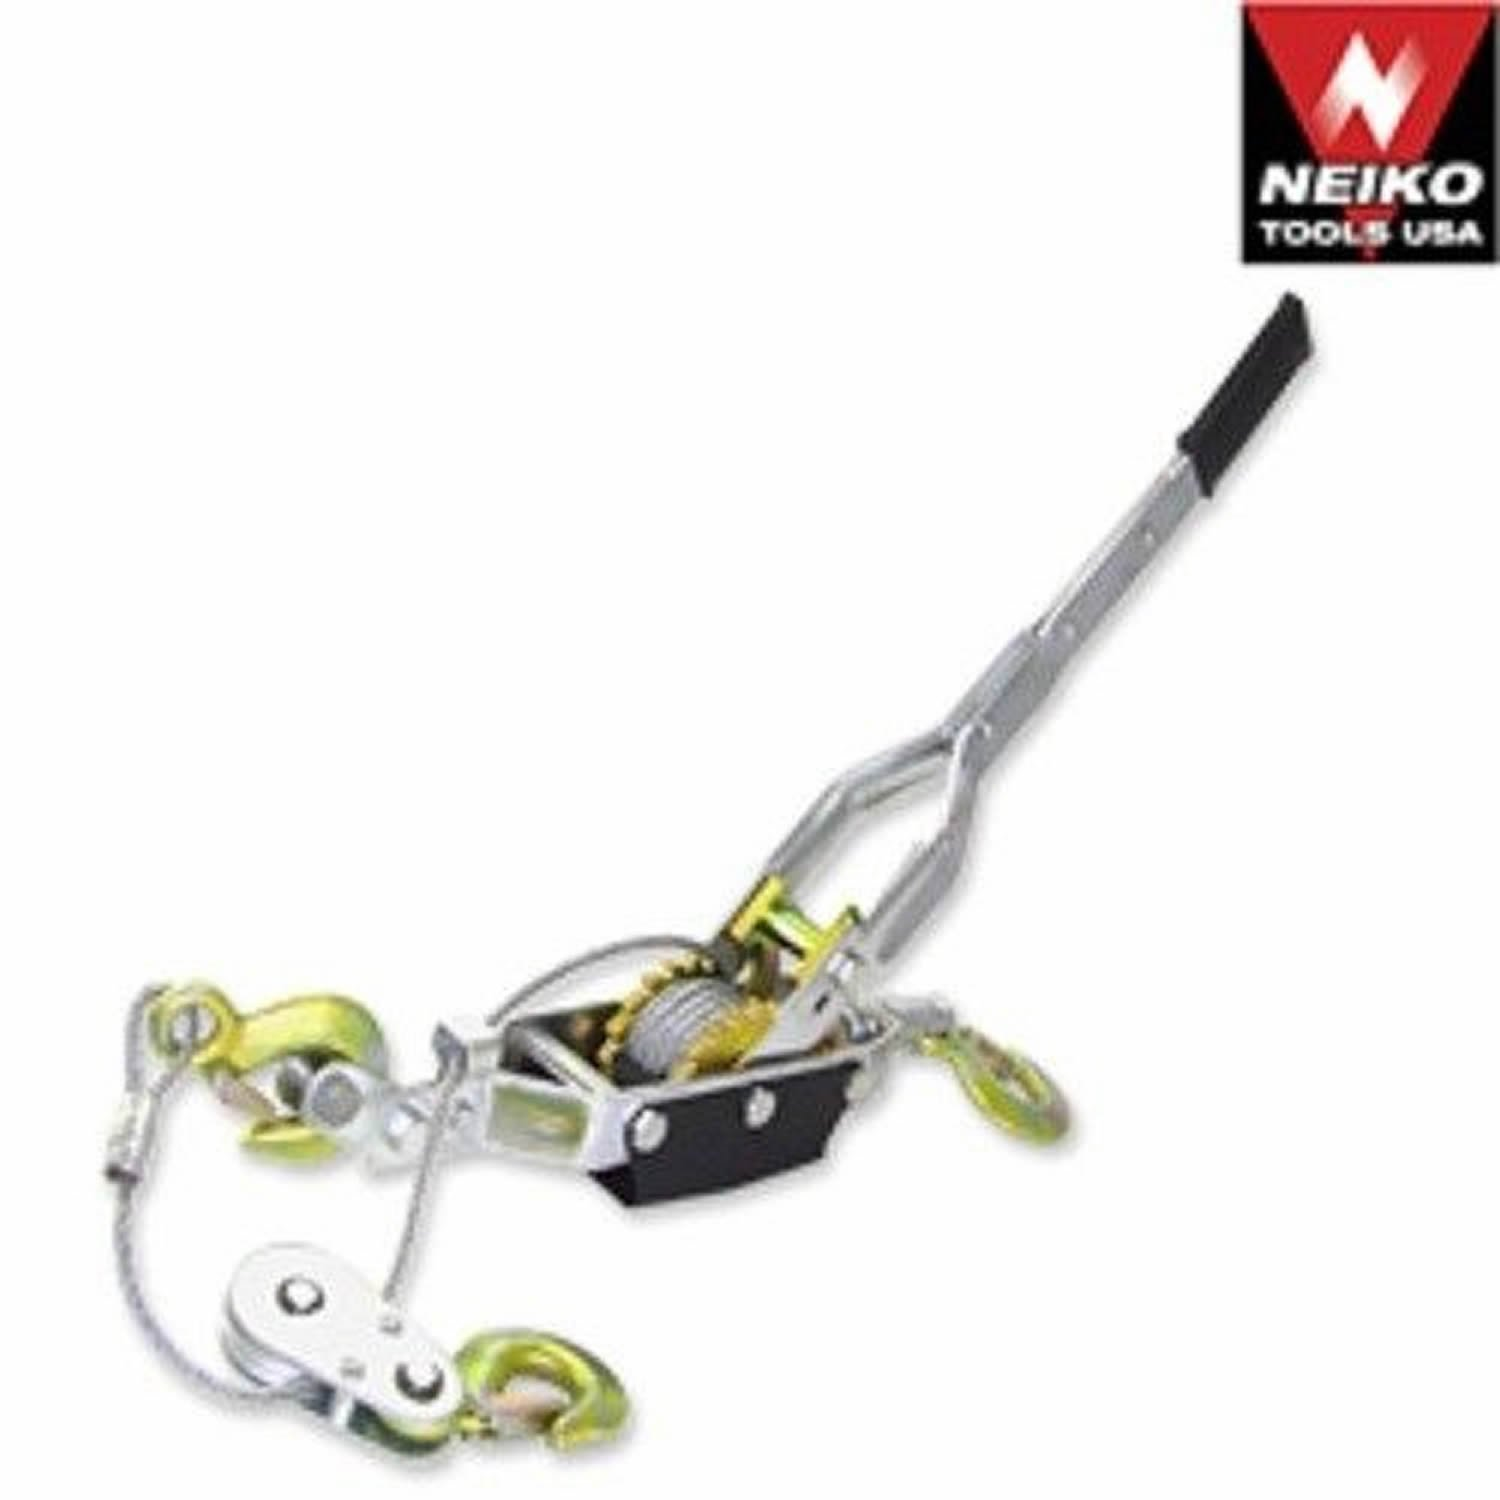 5 Ton Hand Come A Long Ratchet Winch Power Puller Hoist Cable Pulling Tool